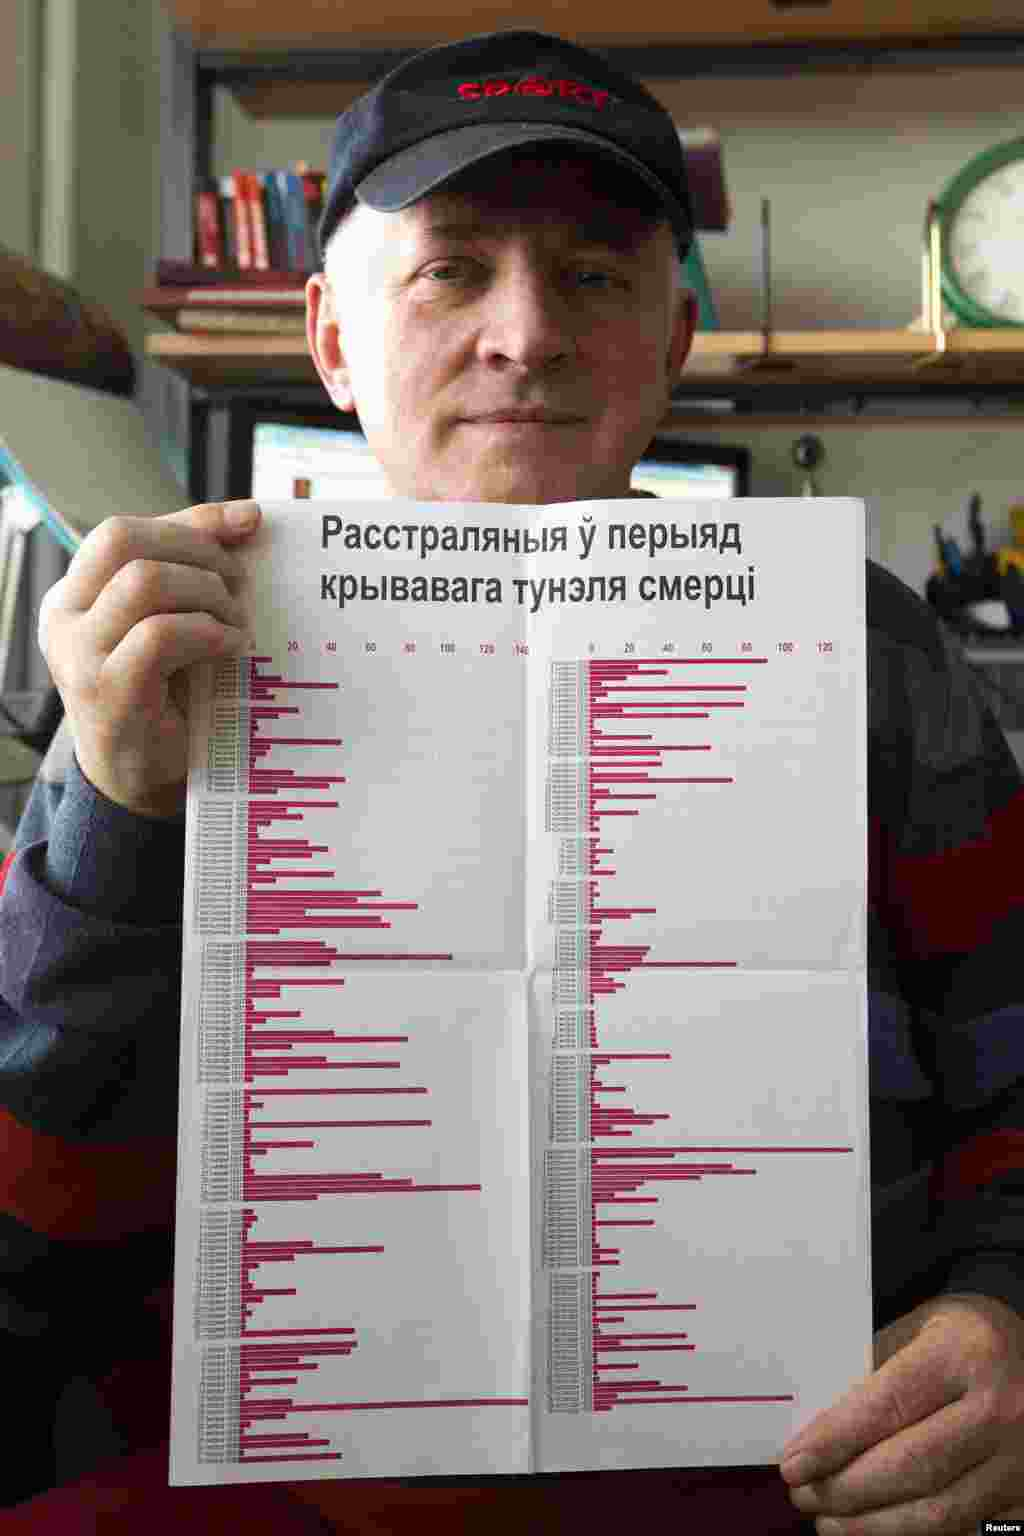 Historian and lexicographer Leanid Marakou holds a daily chart of executions carried out by the NKVD from 1937-1938.